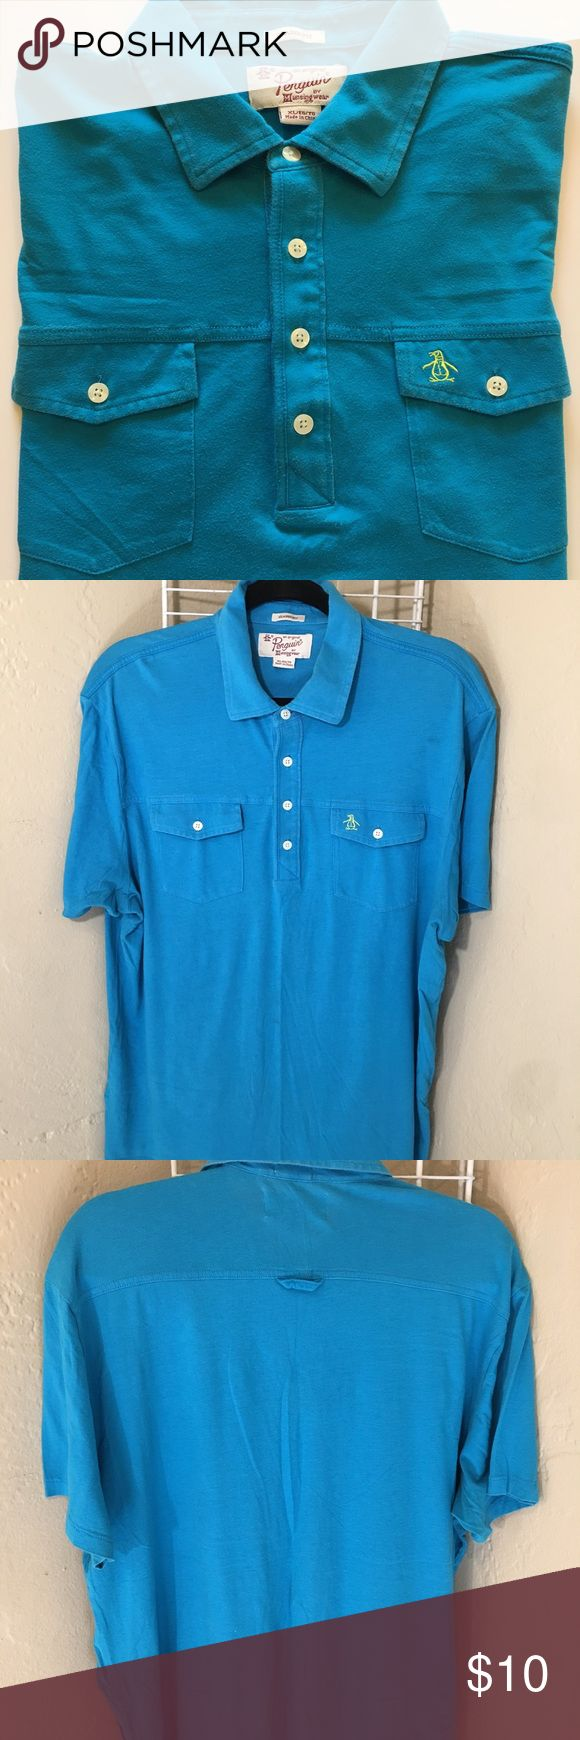 Large Penguin Polo Really nice Large Penguin brand shirt. Found it at TJ Maxx and have wore this shirt a lot. Shirt is still in great shape, the color is pretty live in person. Shirt fit me great around my midsection and arms since Im a little larger 5'10 230-240lbs. Original Penguin Shirts Polos